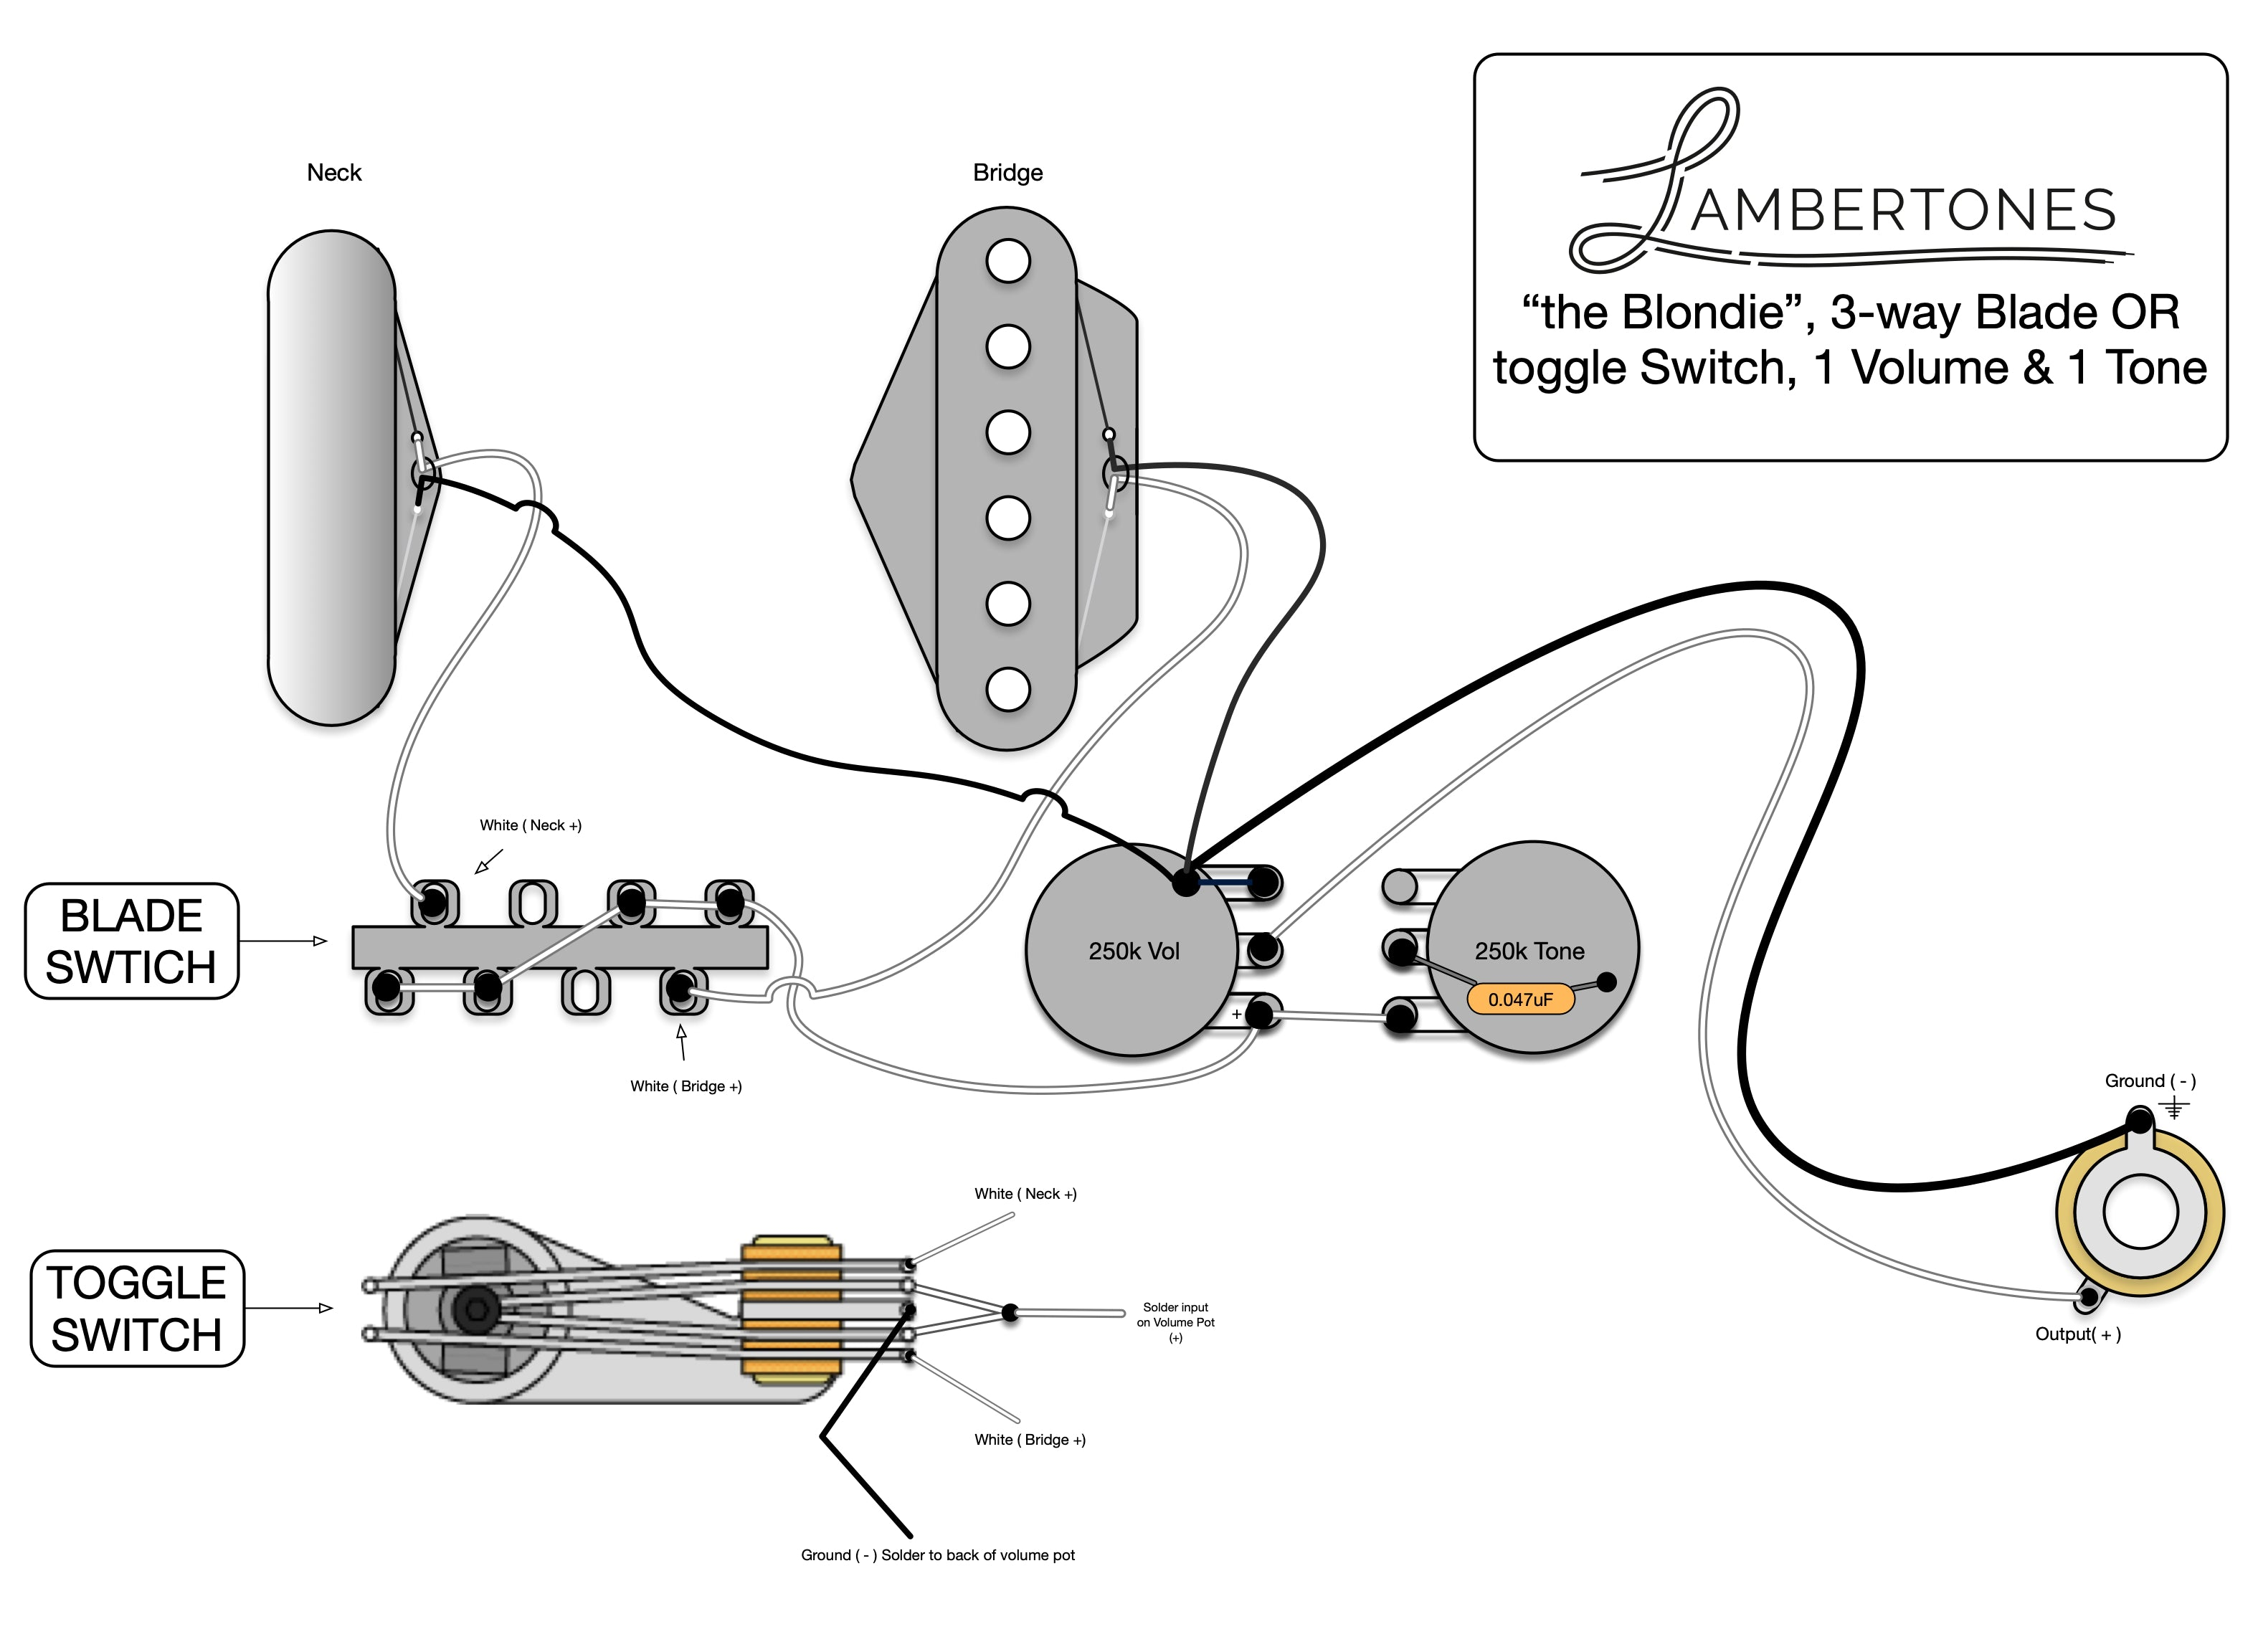 Telecaster Humbucker Wiring Diagram from cdn.shopify.com